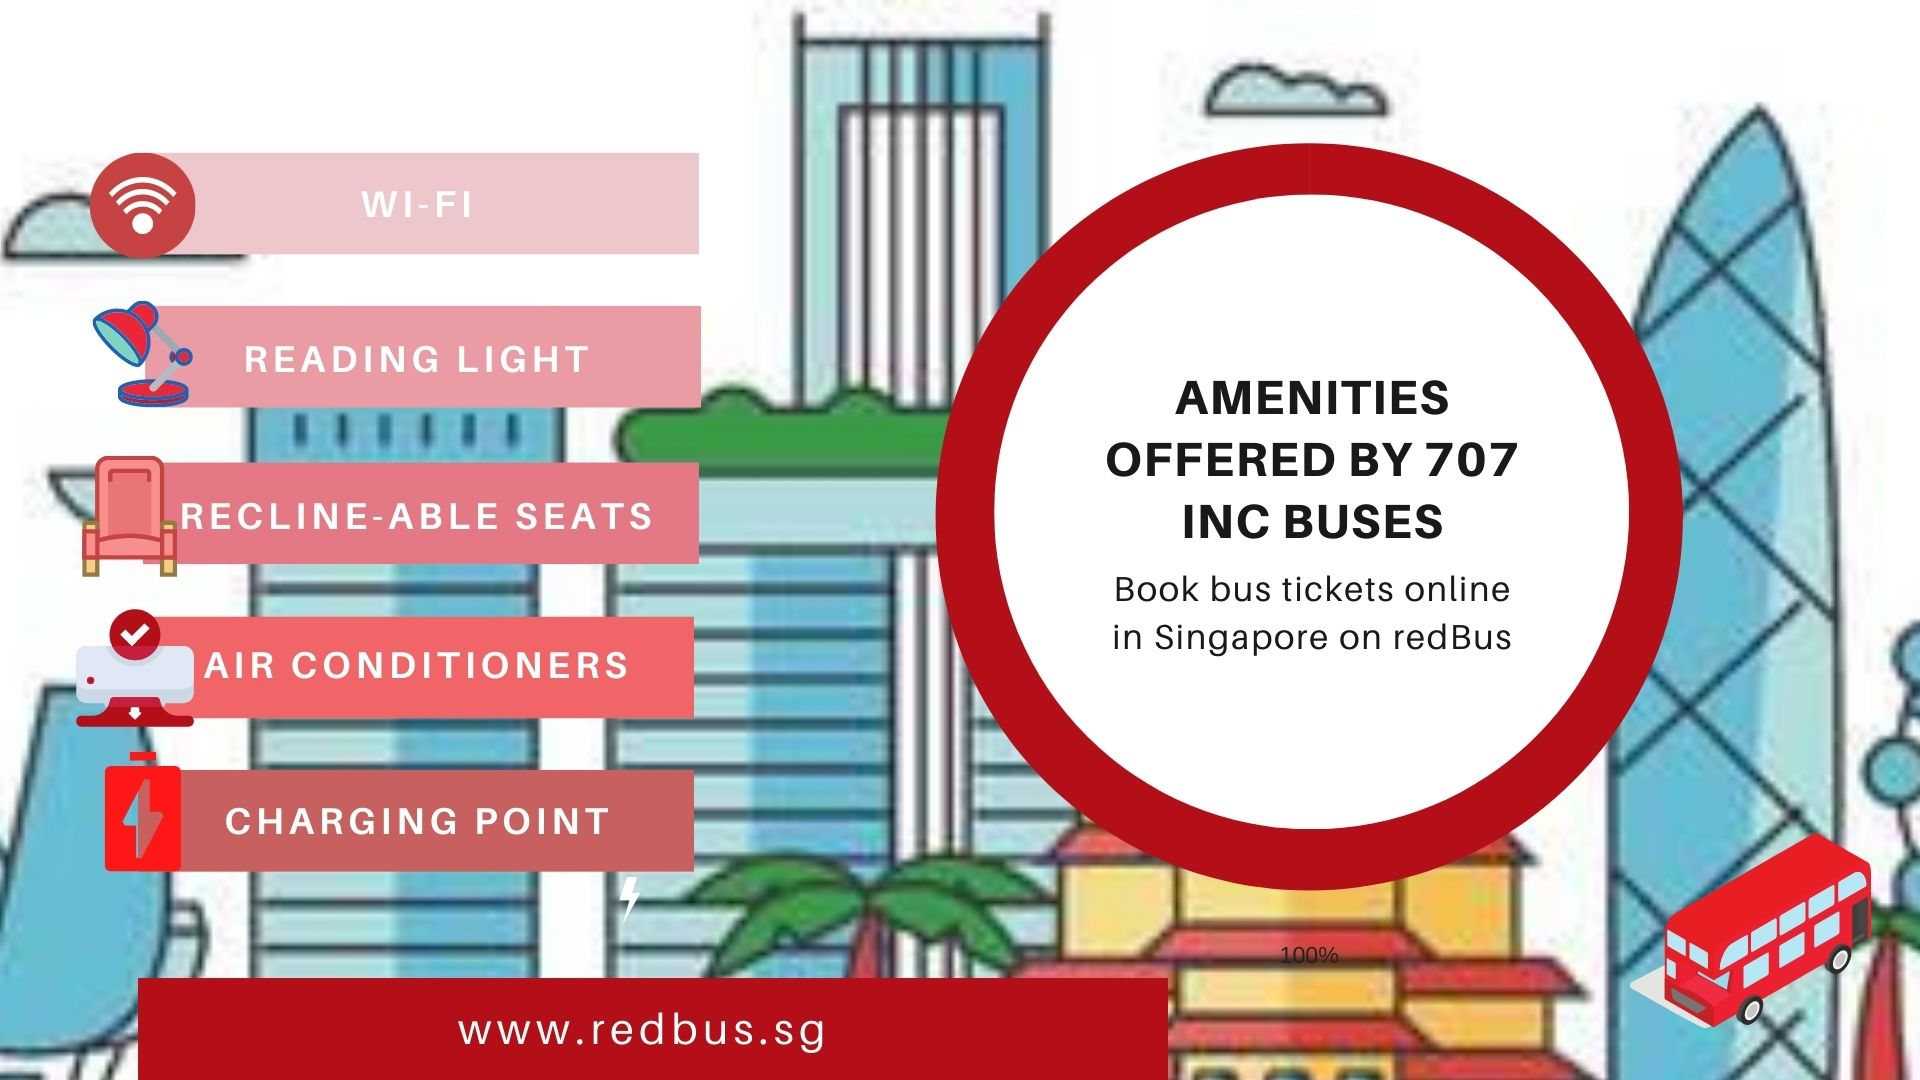 Amenities offered by 707 Inc